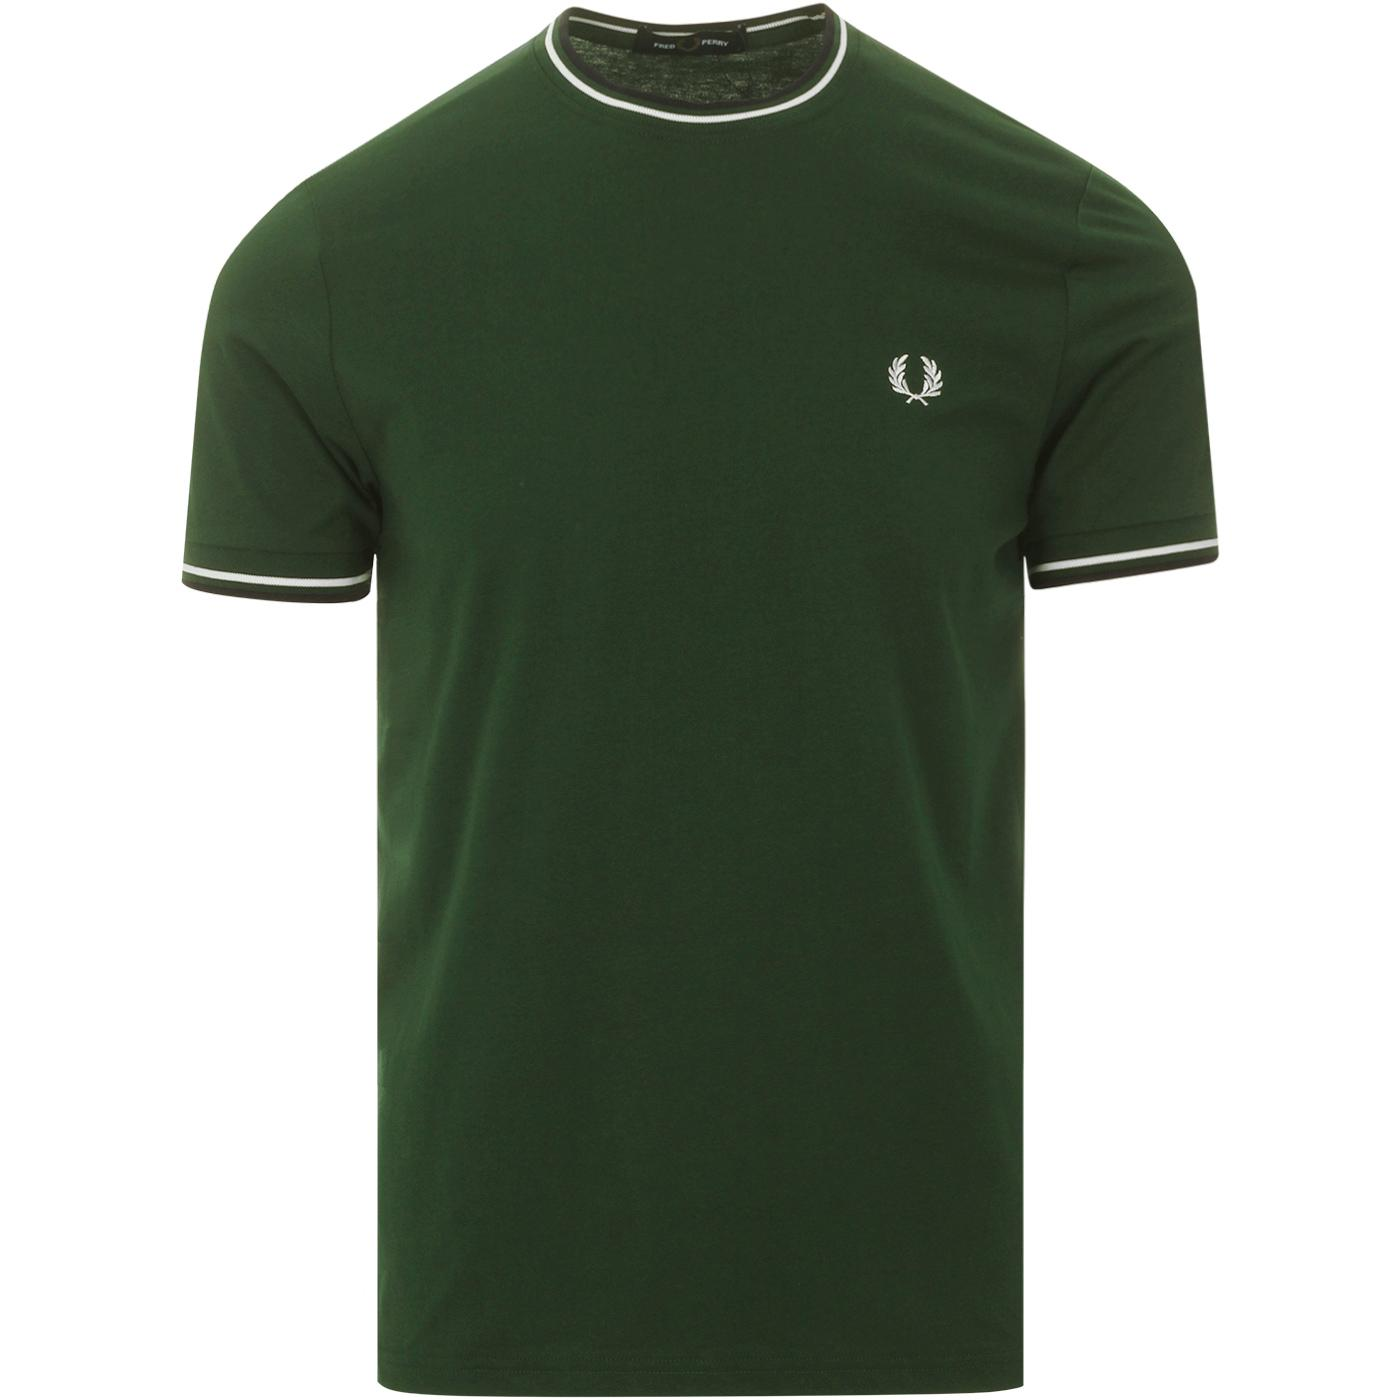 FRED PERRY M1588 Retro Mod Twin Tipped T-Shirt IVY